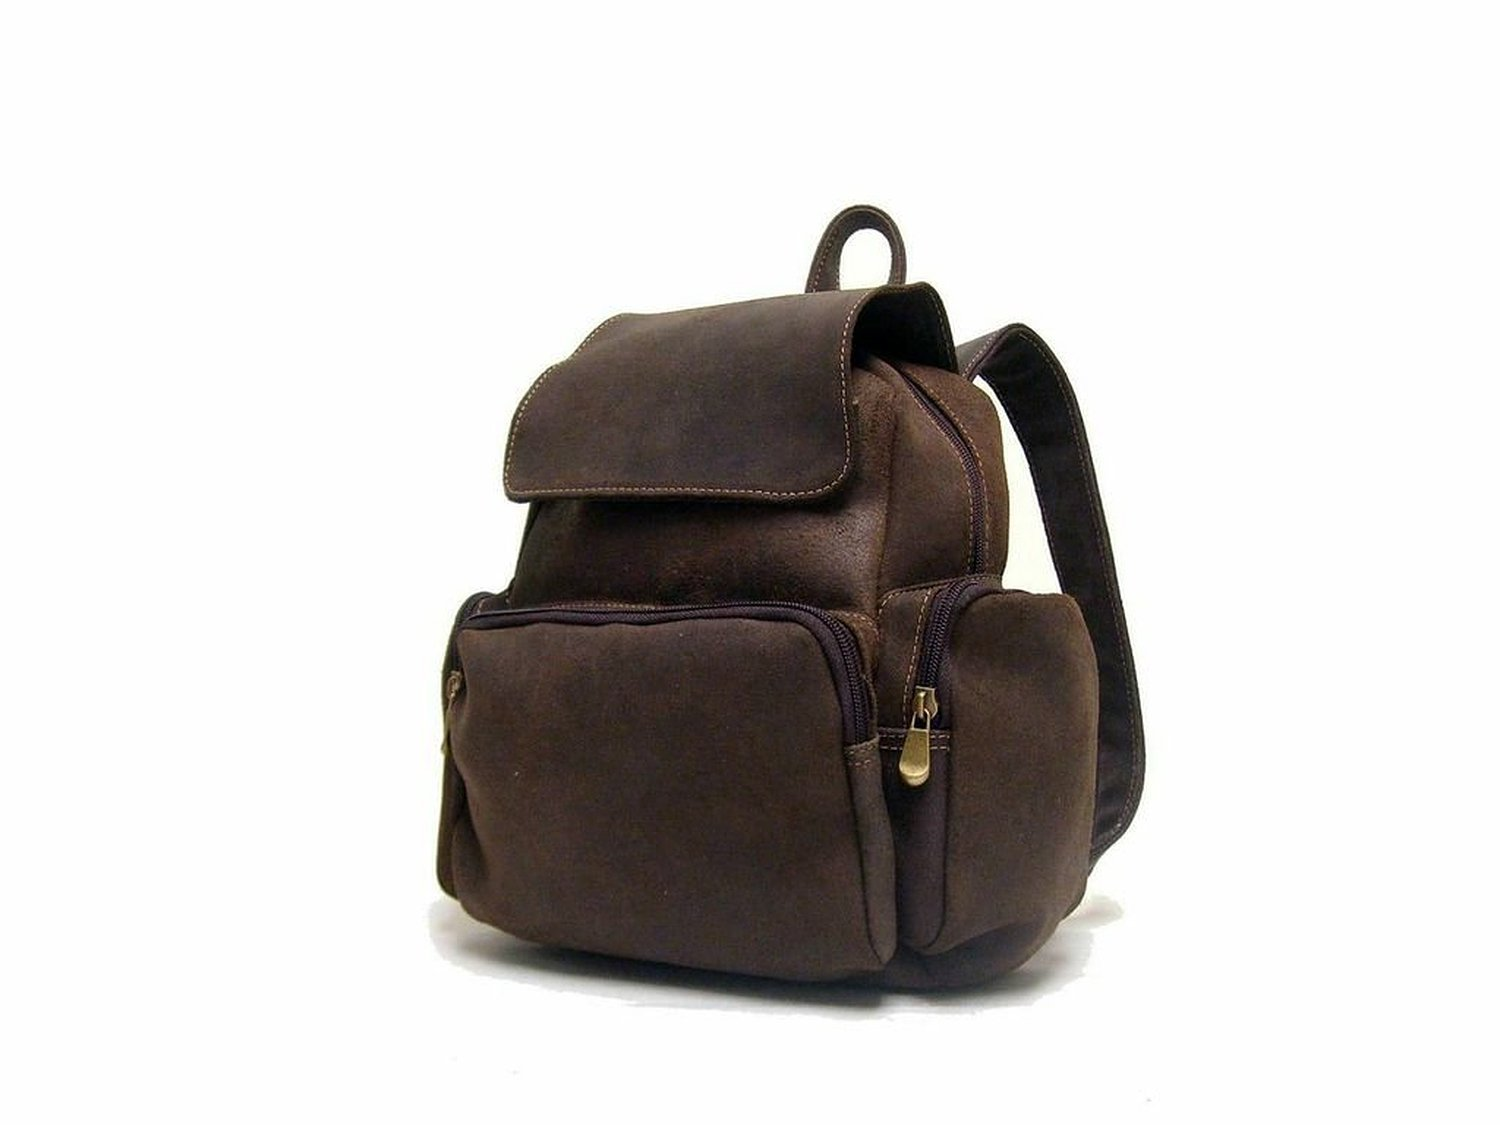 Royce Leather Vaquetta Nappa Knapsack (Brown)